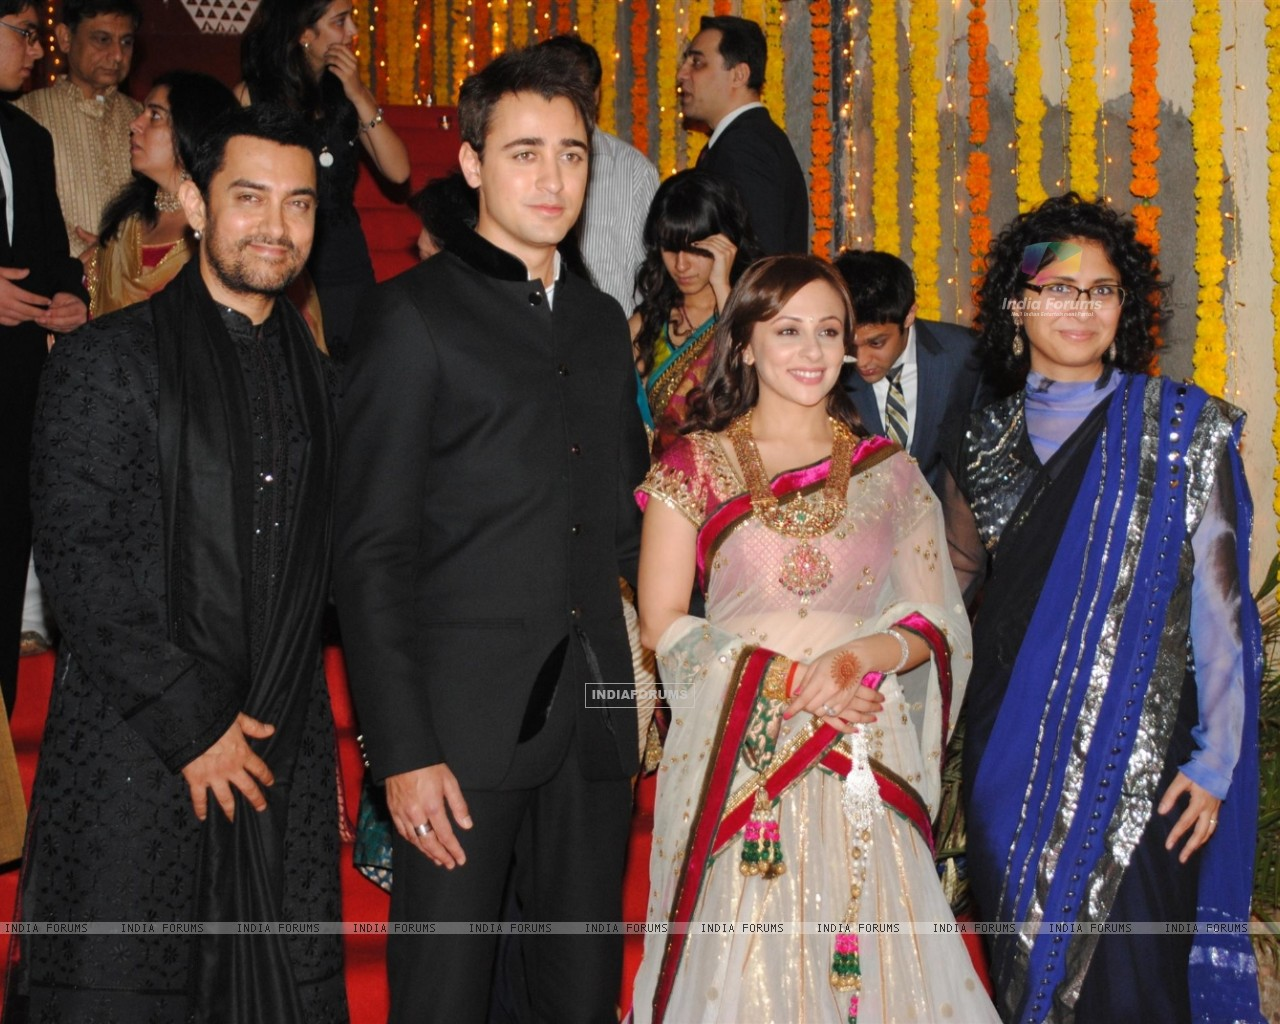 "image titled ""Aamir Khan with Kiran Rao at nephew Imran Khan's wedding"